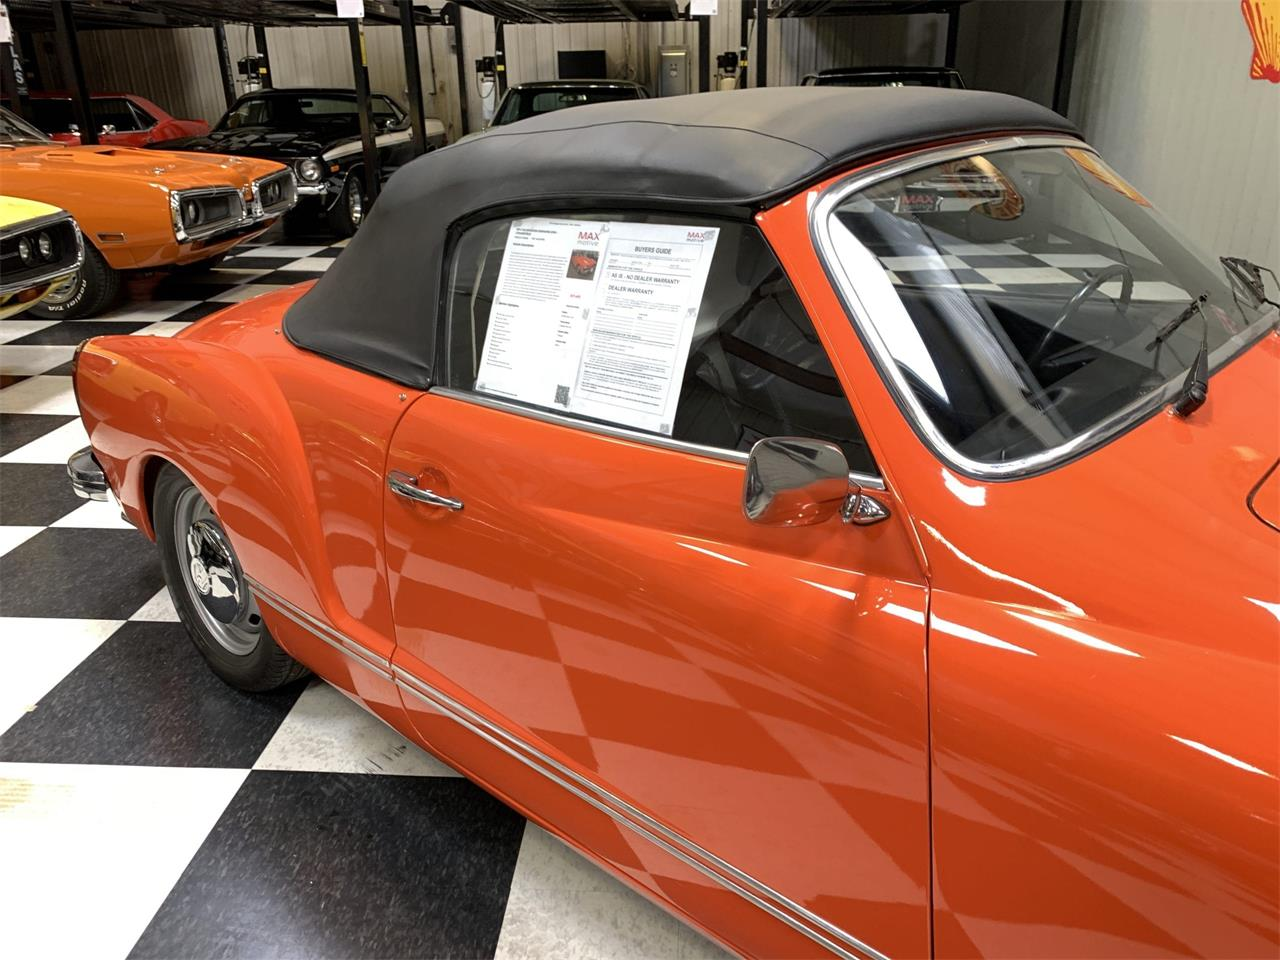 1974 Volkswagen Karmann Ghia for sale in Pittsburgh, PA – photo 12